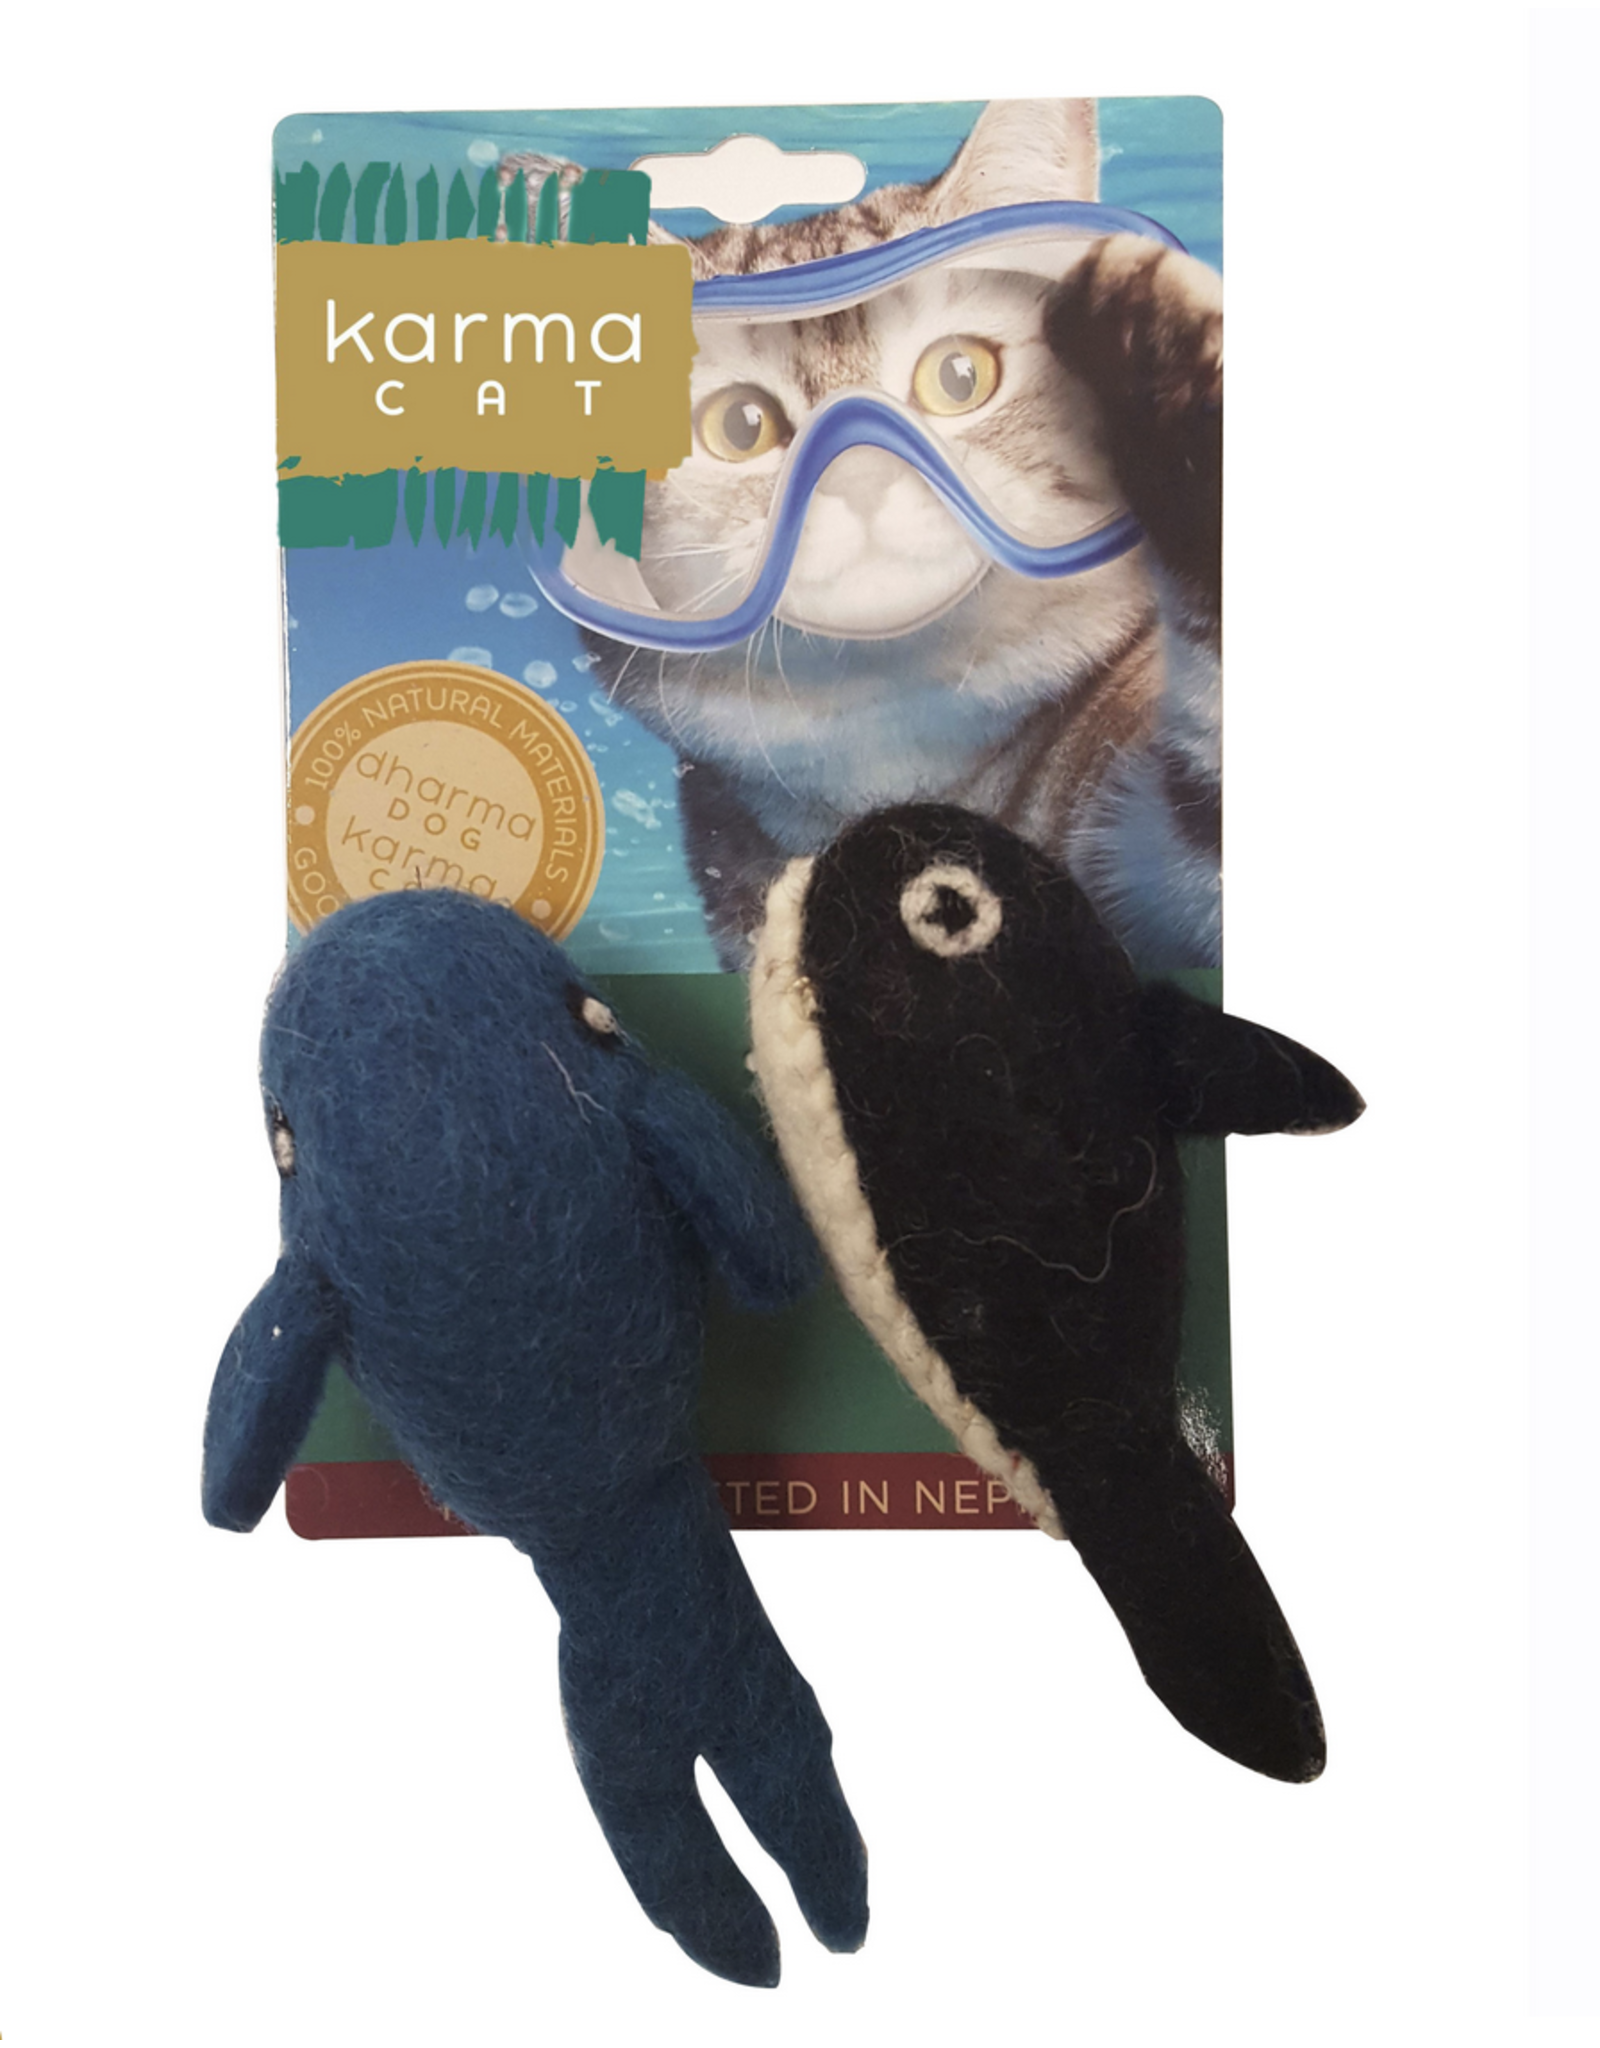 dharma dog and Karma cat Dharma Dog Karma Cat - Whale and Orca - Set of 2